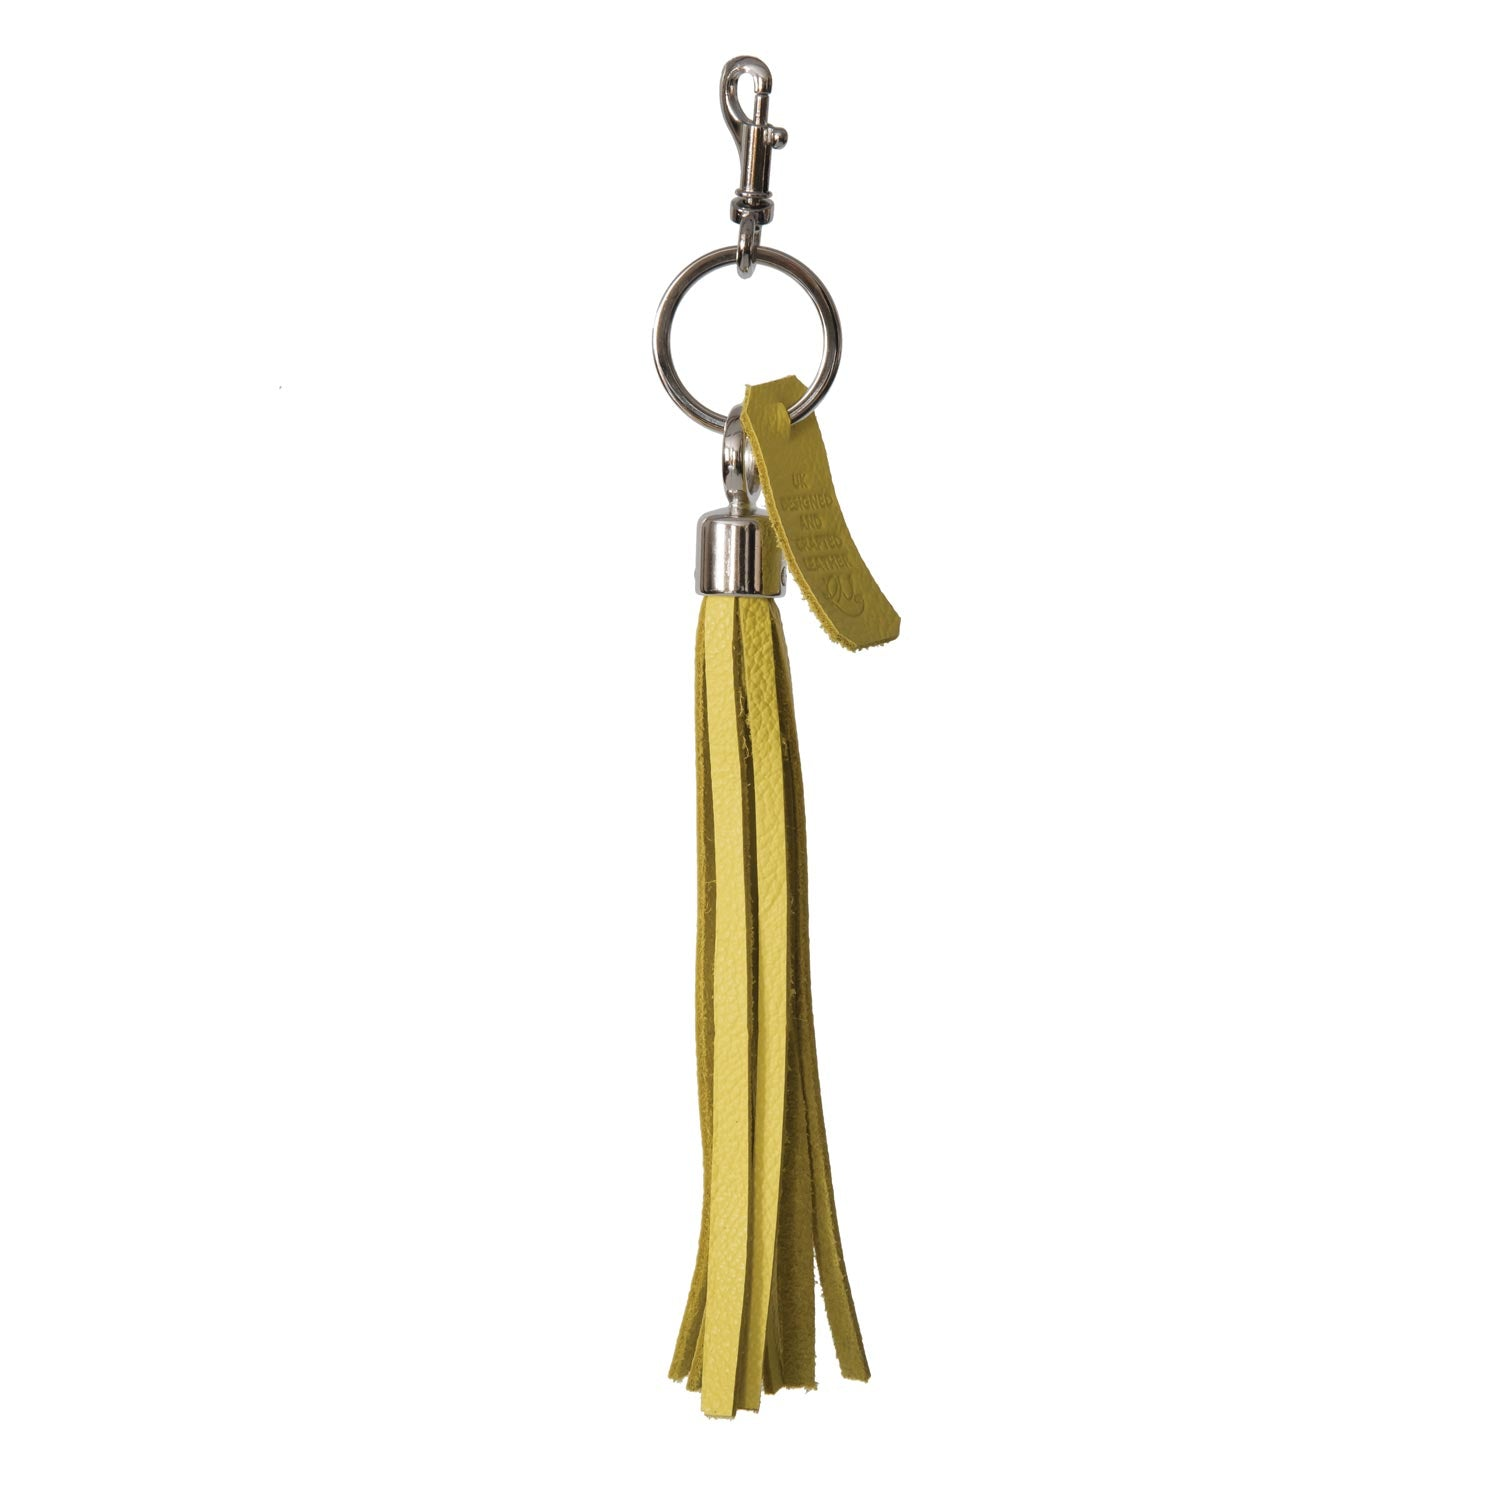 Bluebell Leather Tassel Key Ring / Bag Charm -  Yellow Biker